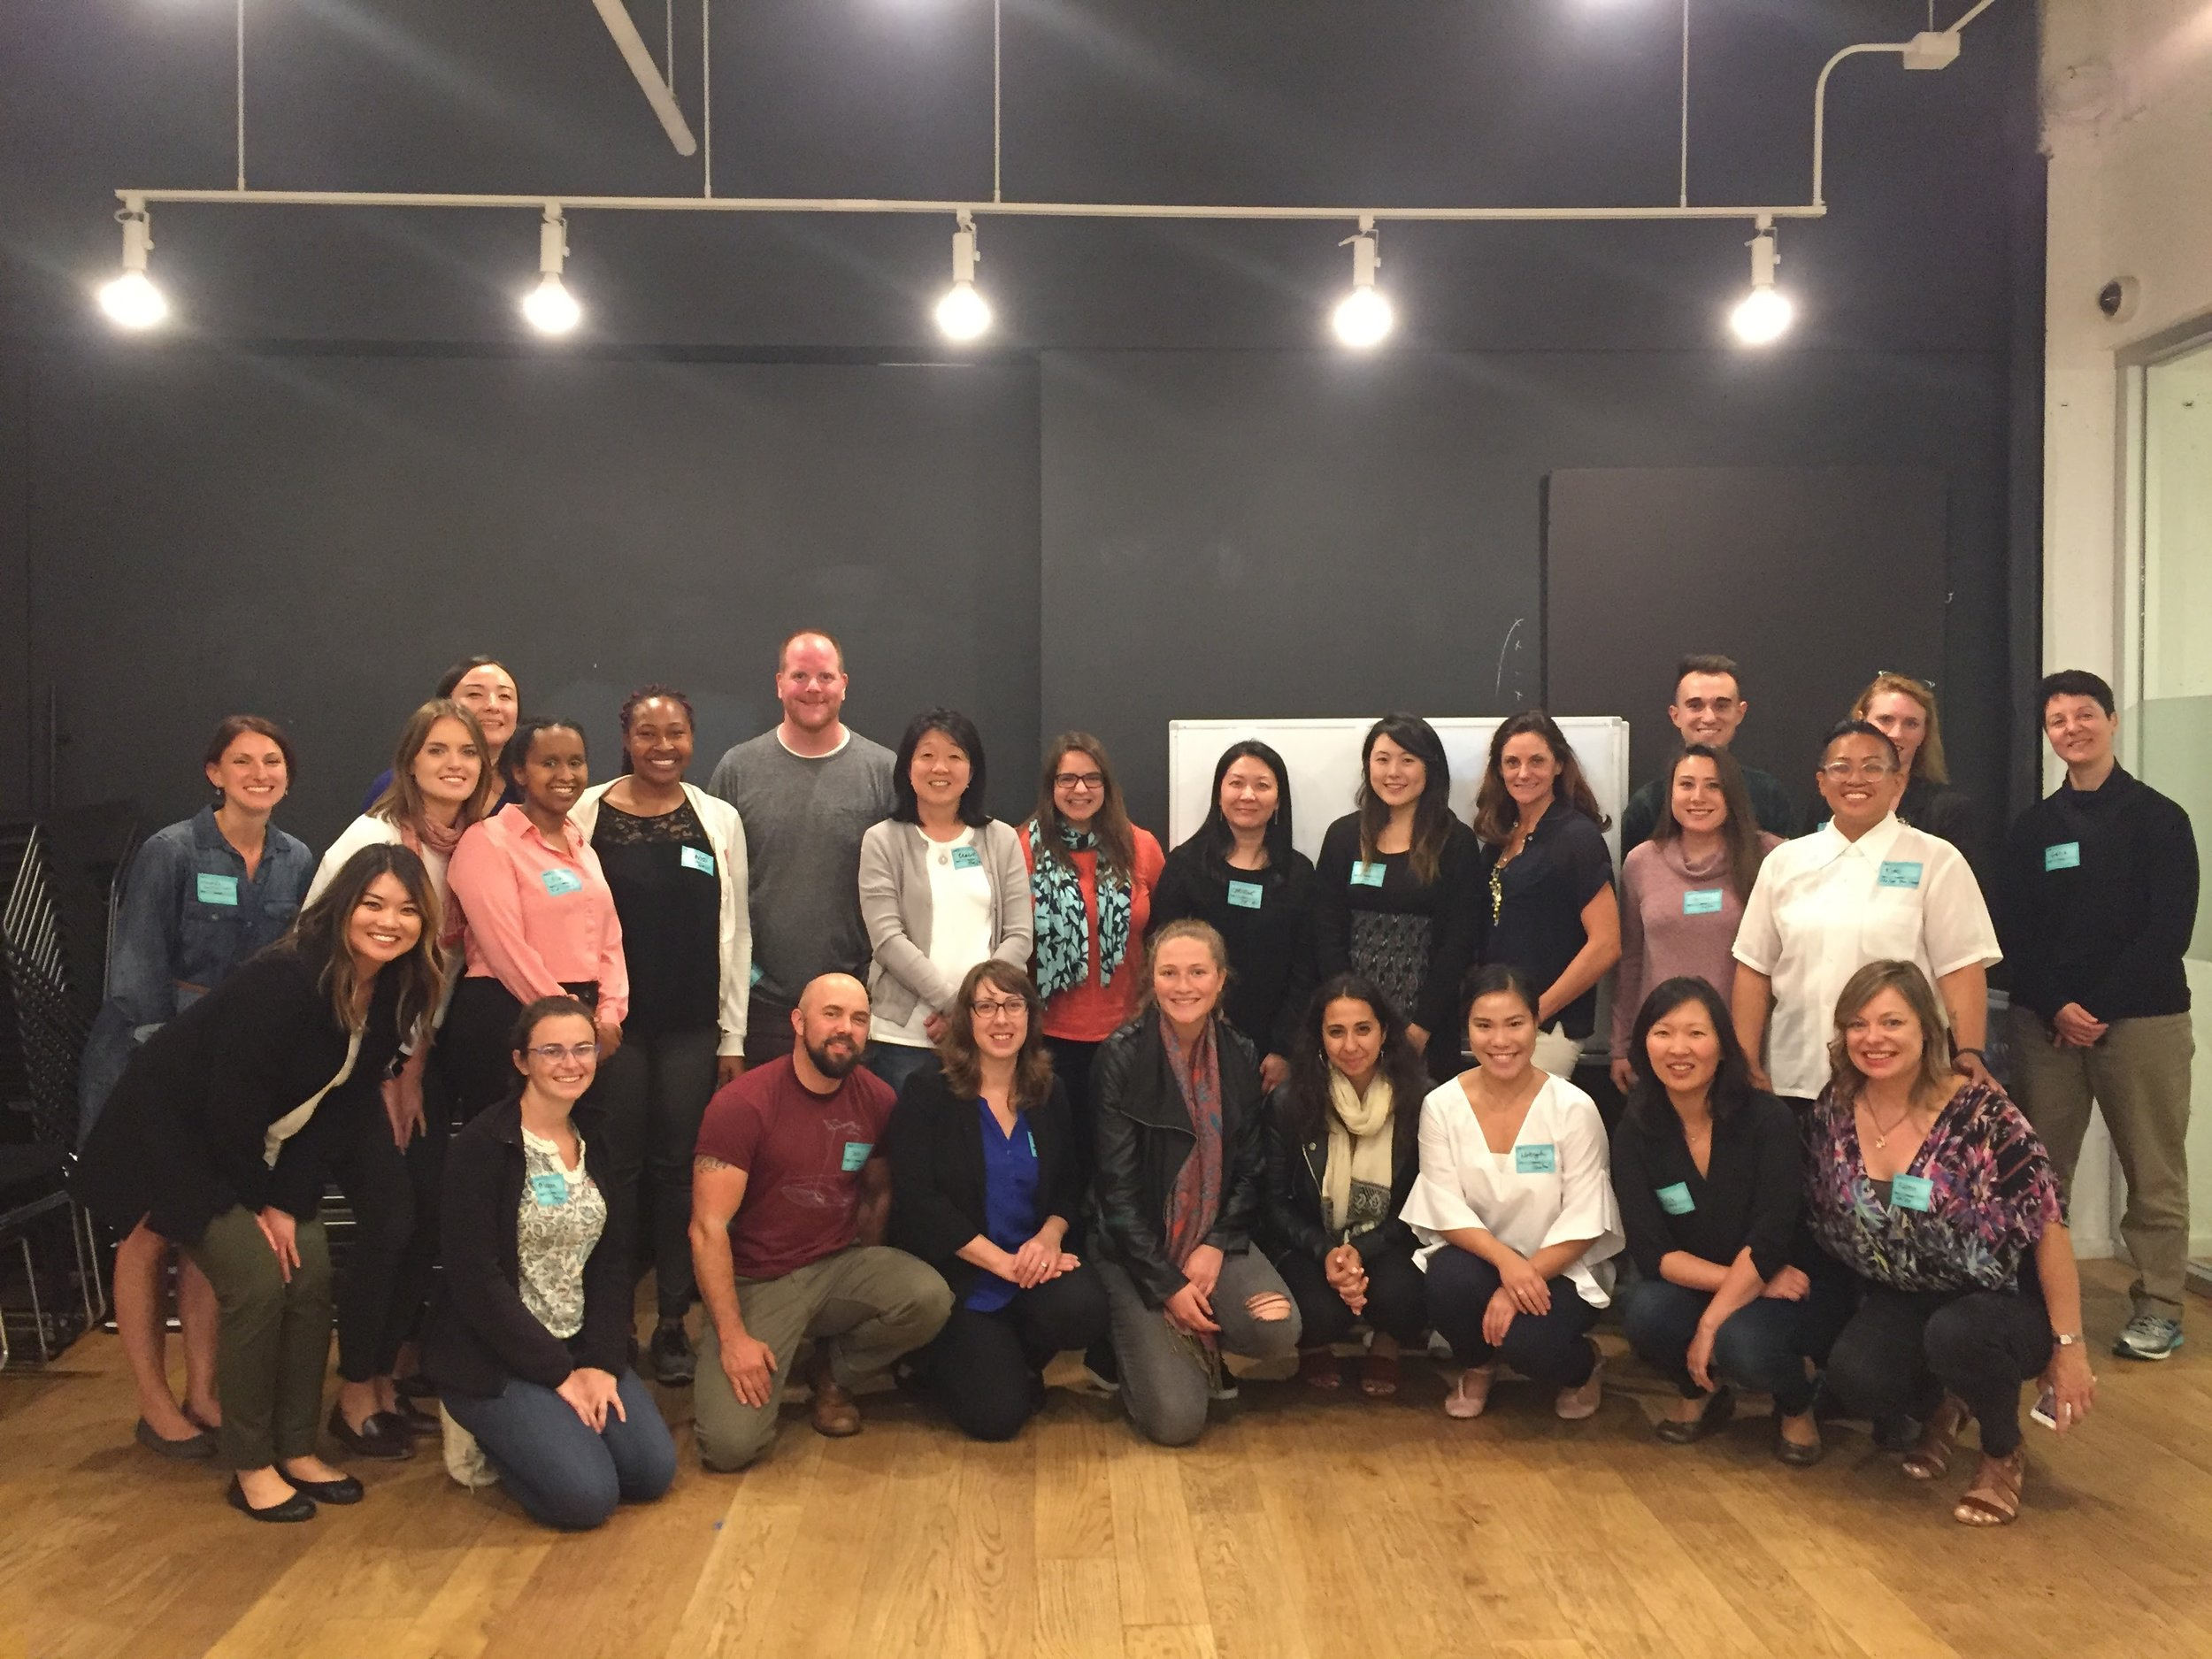 Awaken Team and Inclusive Leadership Program Series Participants in 2017